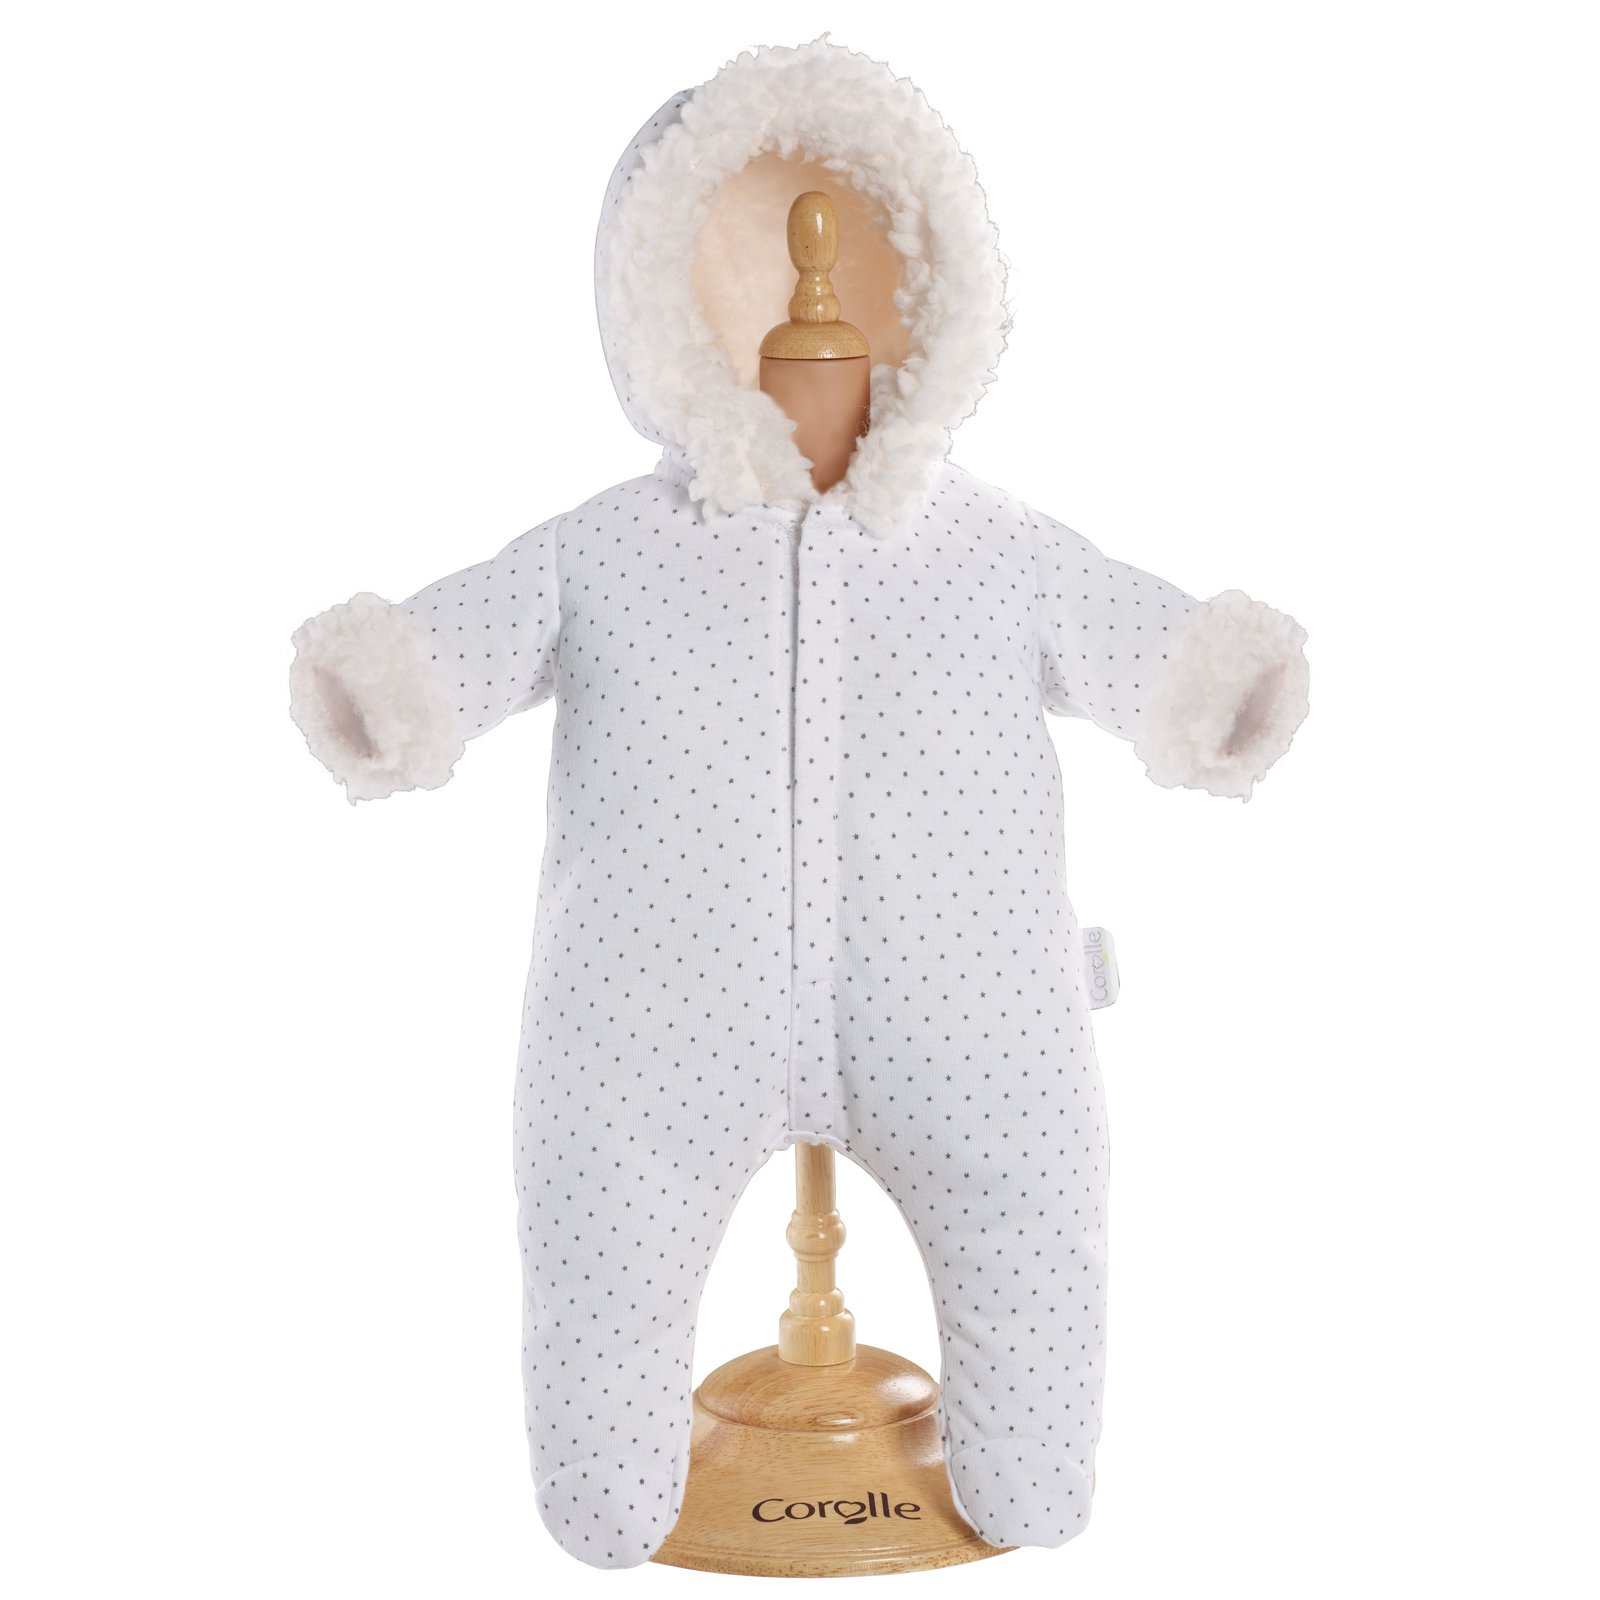 Corolle Mon Classiques Bebe 17 in. White Snowsuit Doll Ensemble by Corolle